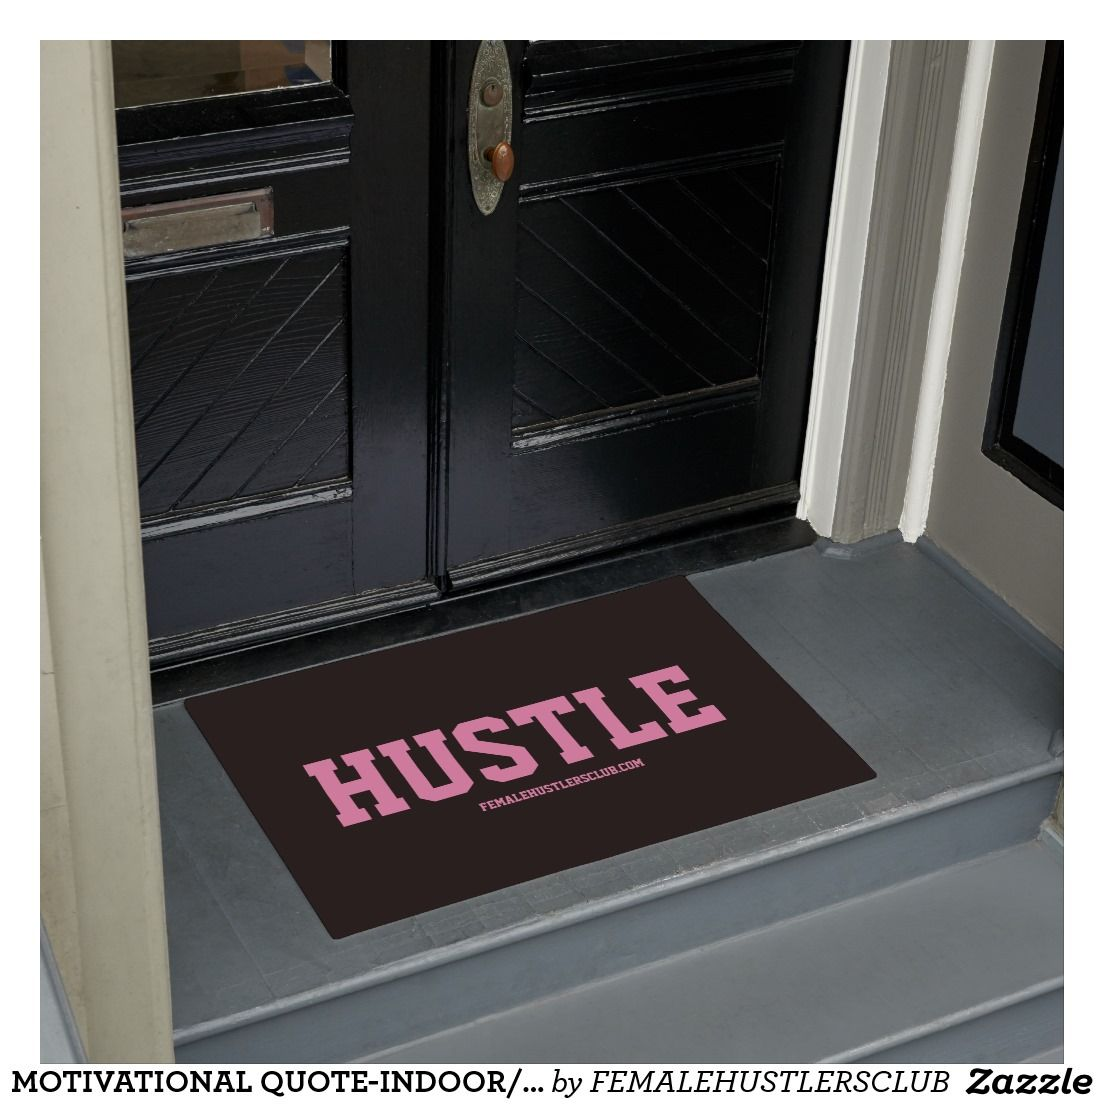 Hustle entreprenuer quote-floor mats | Hustle, Motivational and ...